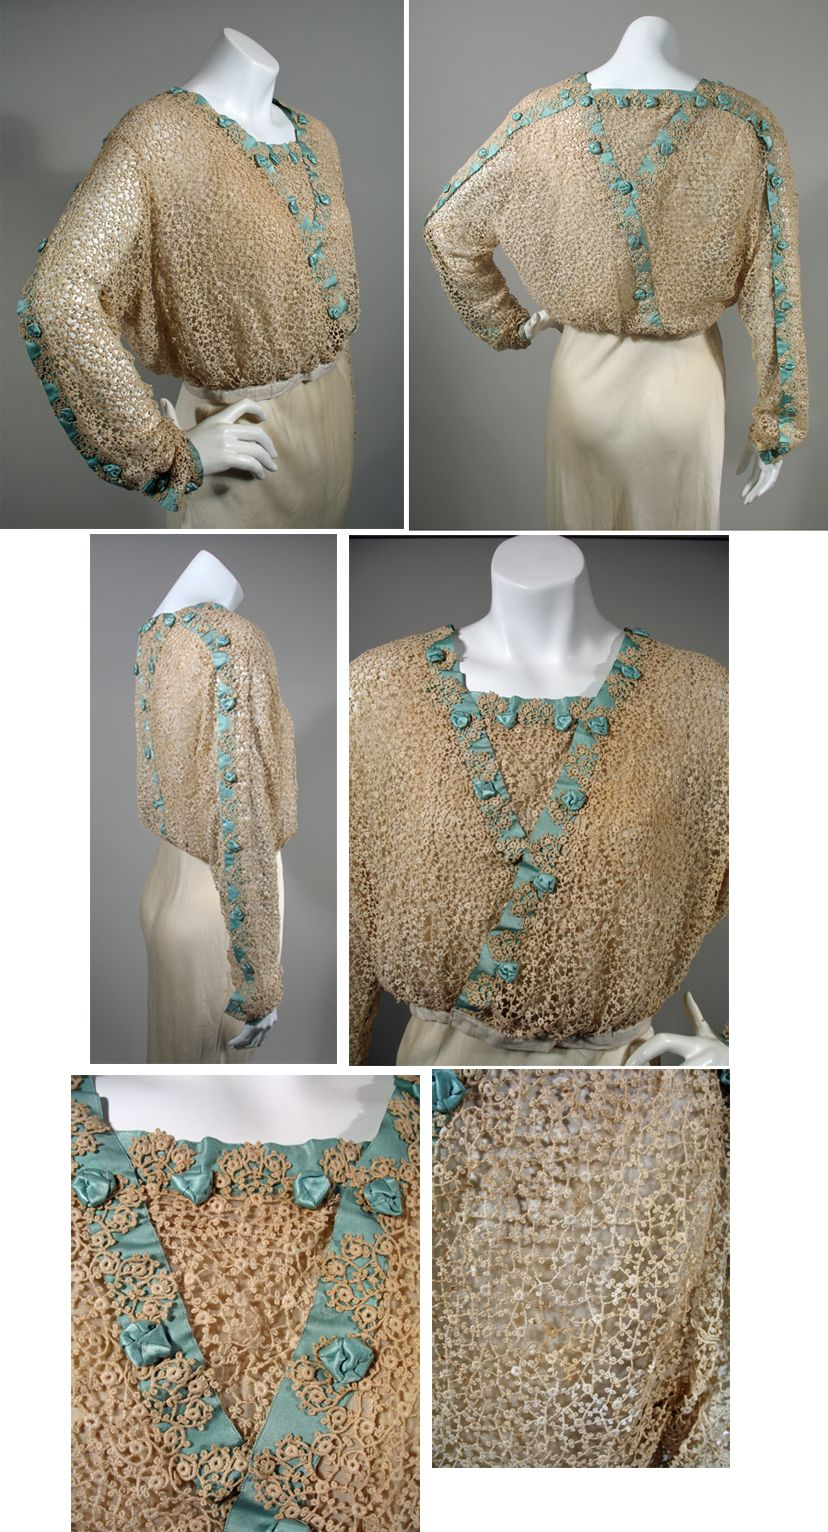 """1917-1919 Lace Blouse with Celadon Green Silk Ribbon """"Machine made lace  blouse with the soft green silk ribbon trim woven through the lace."""